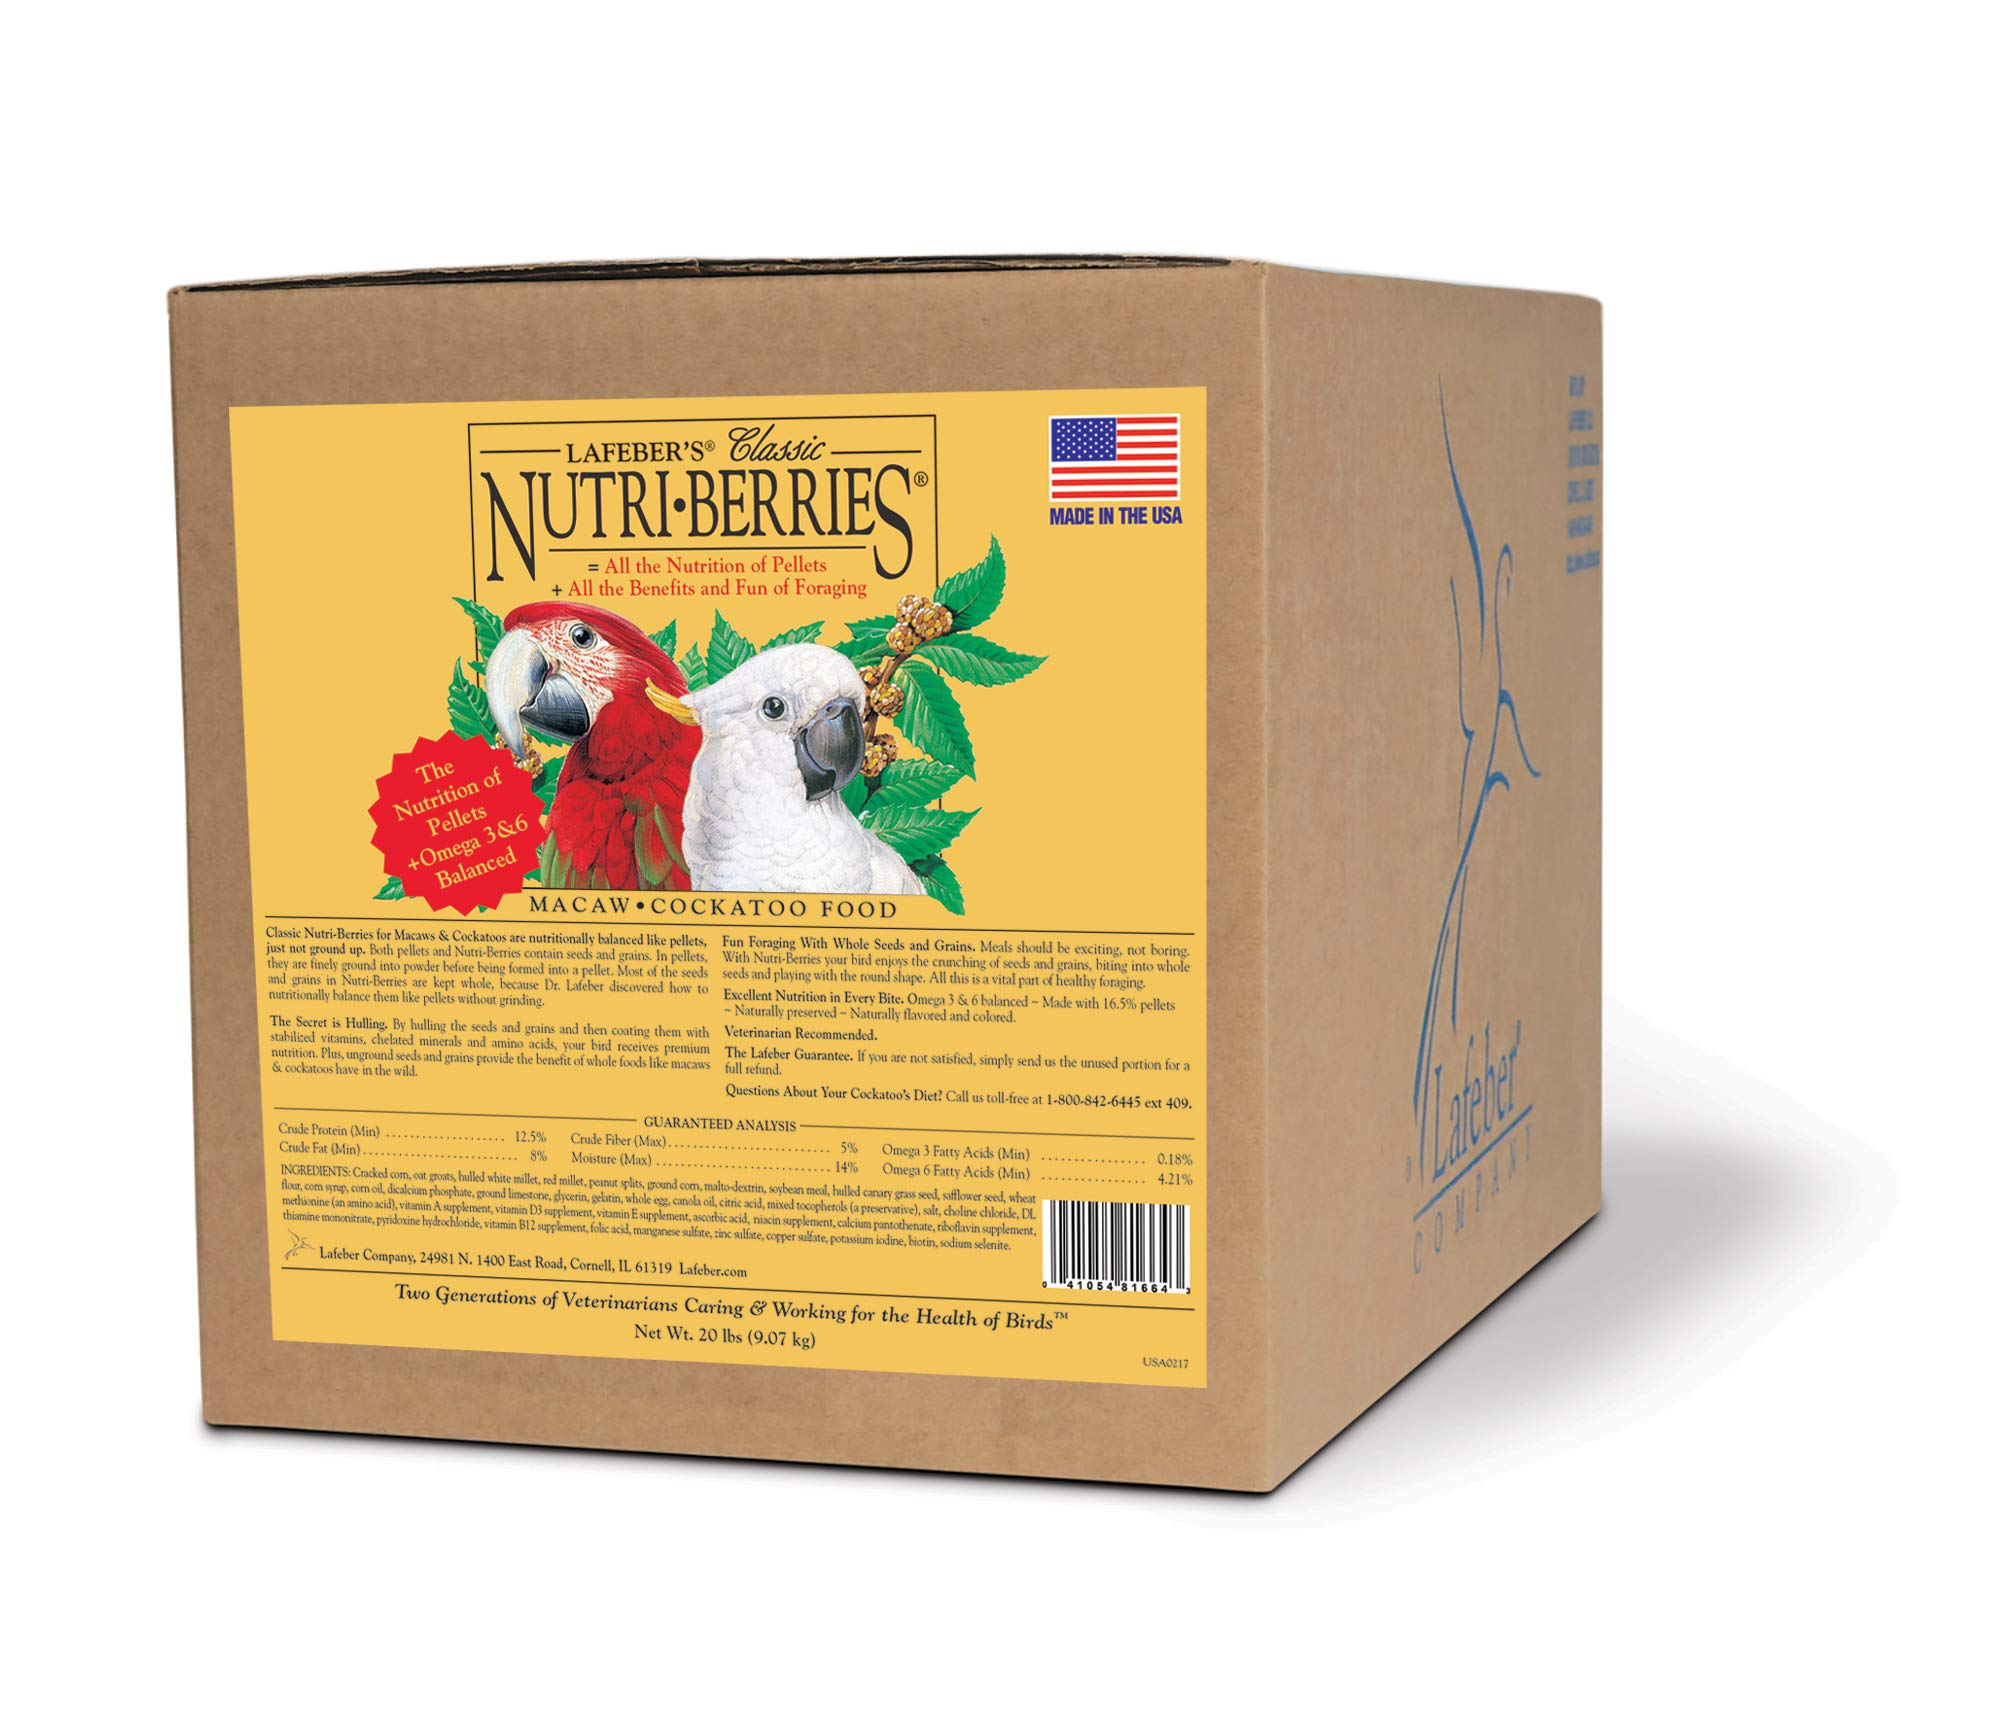 LAFEBER'S Classic Nutri-Berries Pet Bird Food, Made with Non-GMO and Human-Grade Ingredients, for Macaws and Cockatoos, 20 lbs by LAFEBER'S